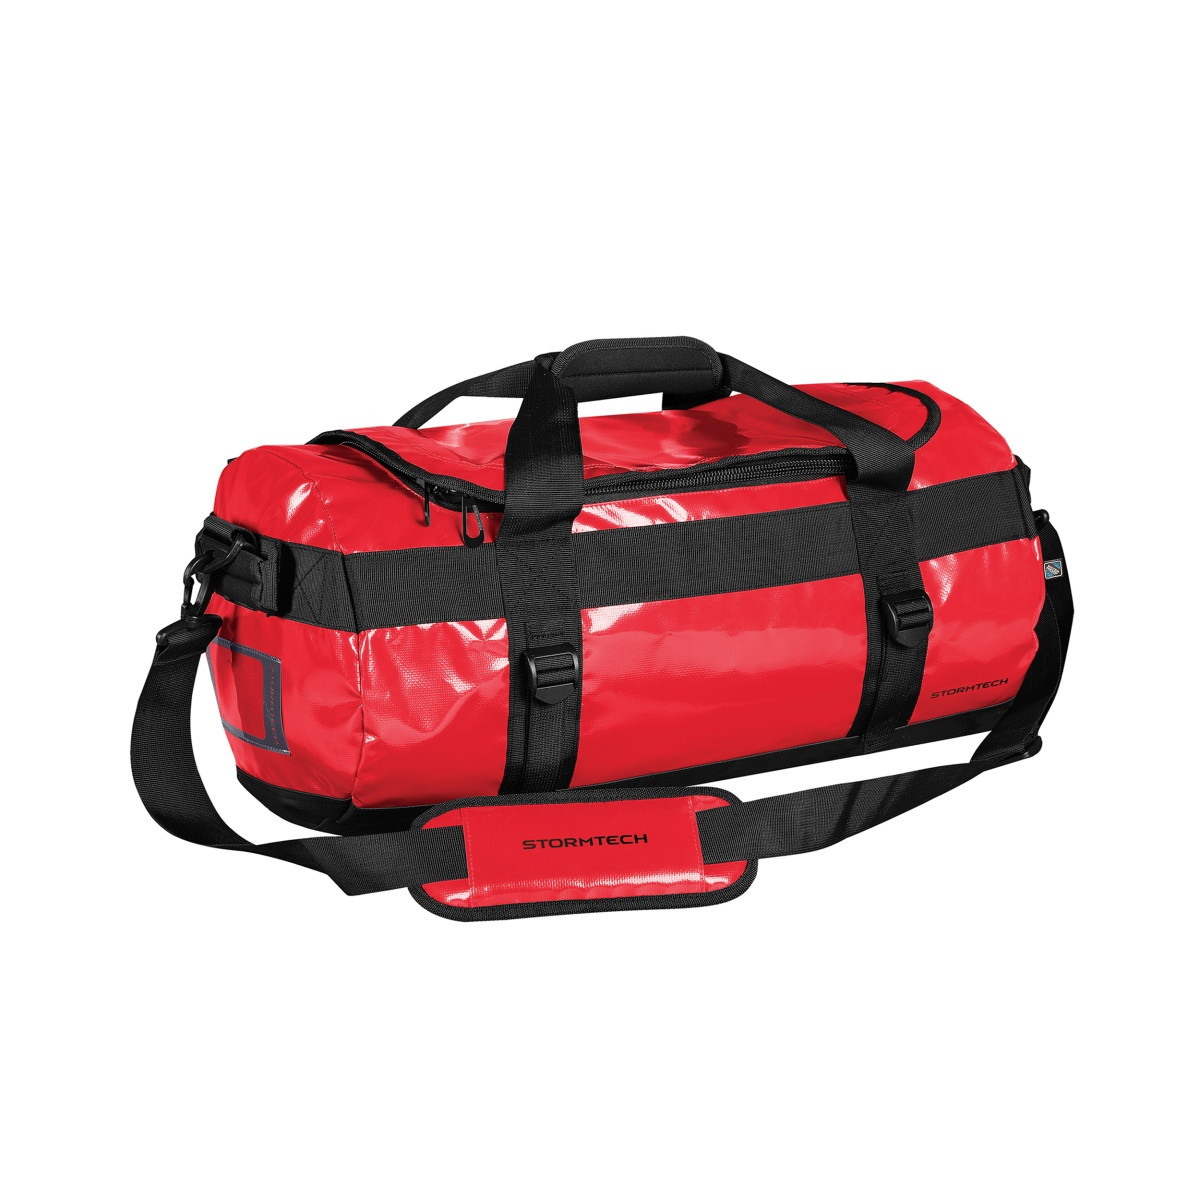 Stormtech Waterproof Gear Holdall Bag (Small) (Pack of 2) (One Size) (Bold Red/Black)